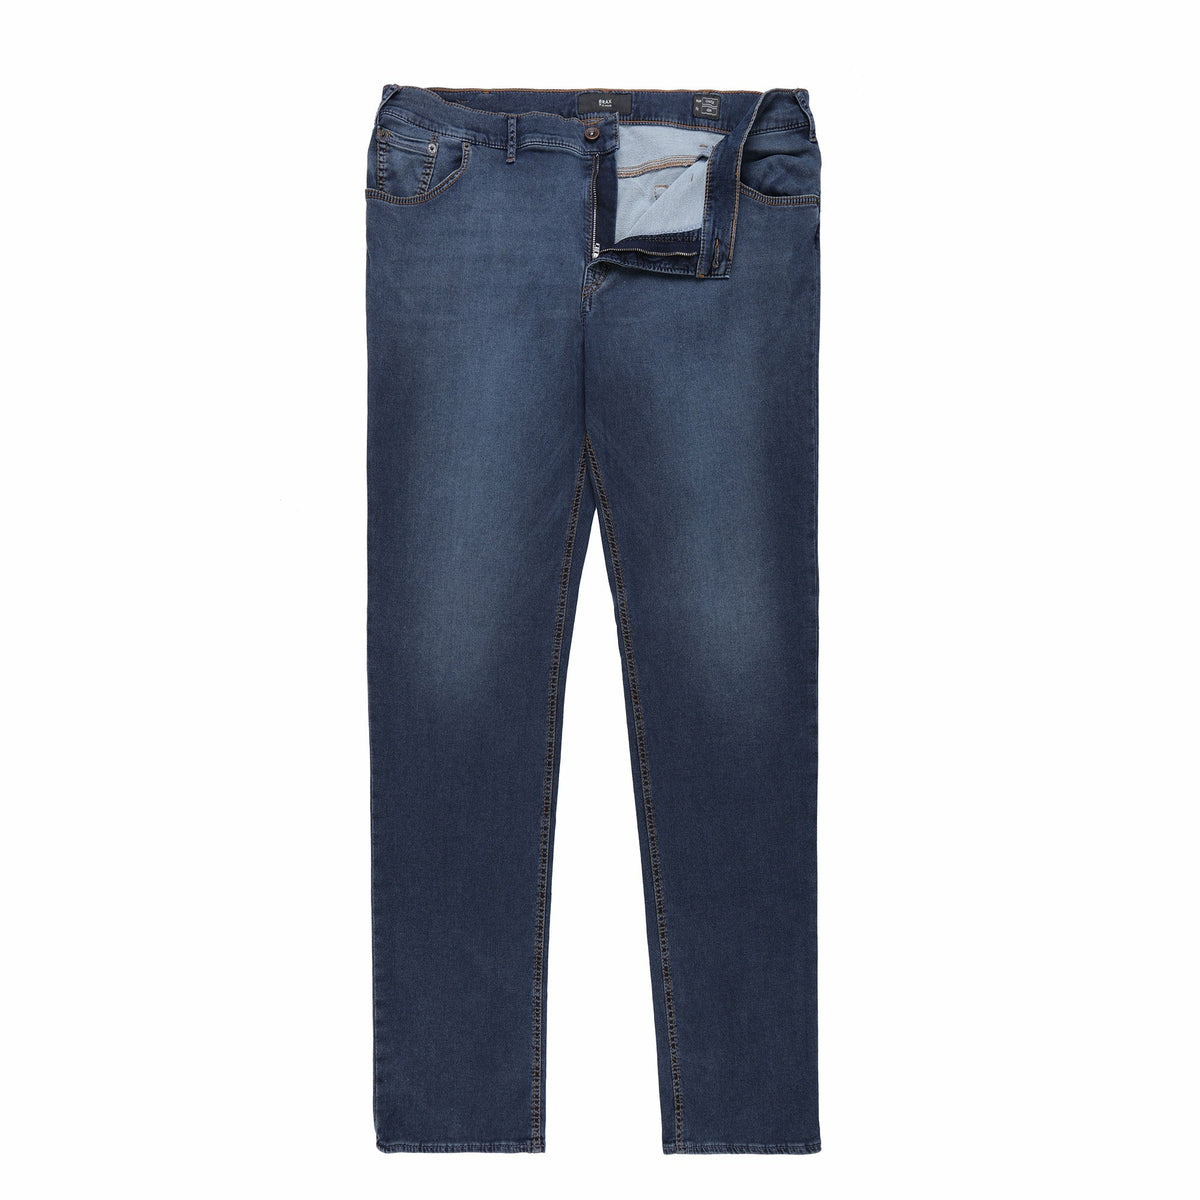 Brax Chuck Jeans in Dark Denim